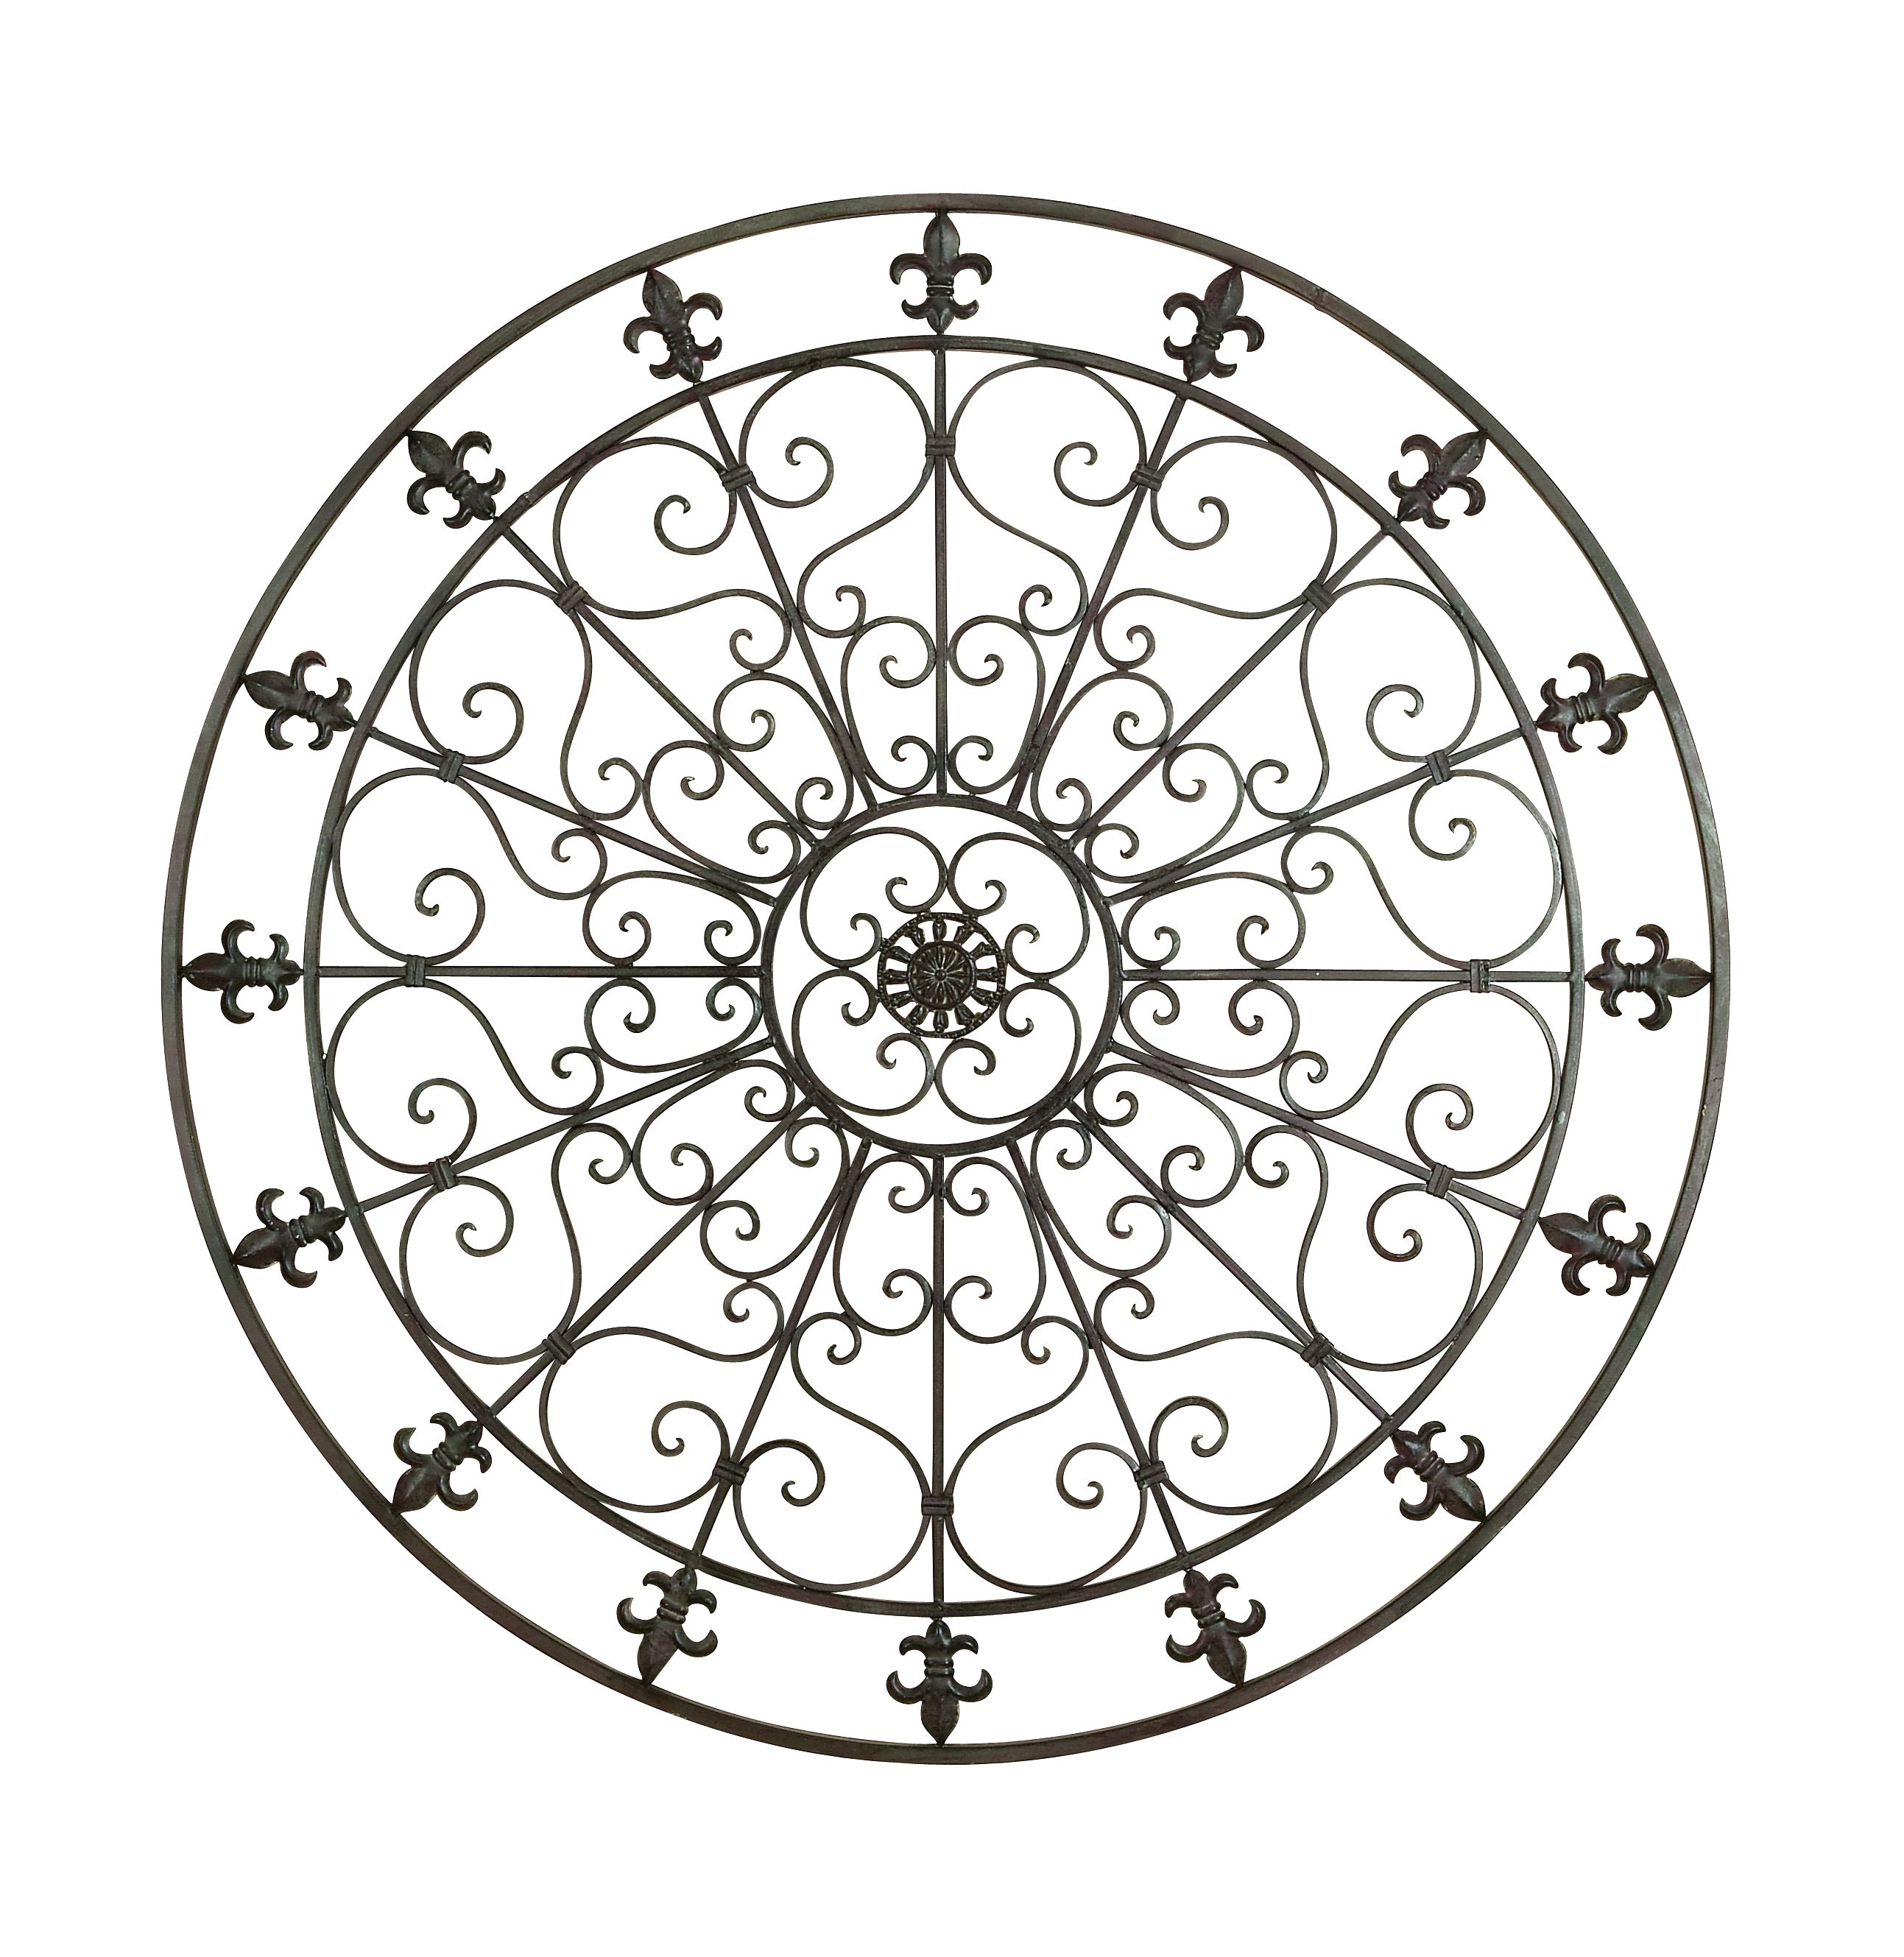 Decmode Rustic 42 Inch Fleur-De-Lis and Scrollwork Round Metal Wall Decor